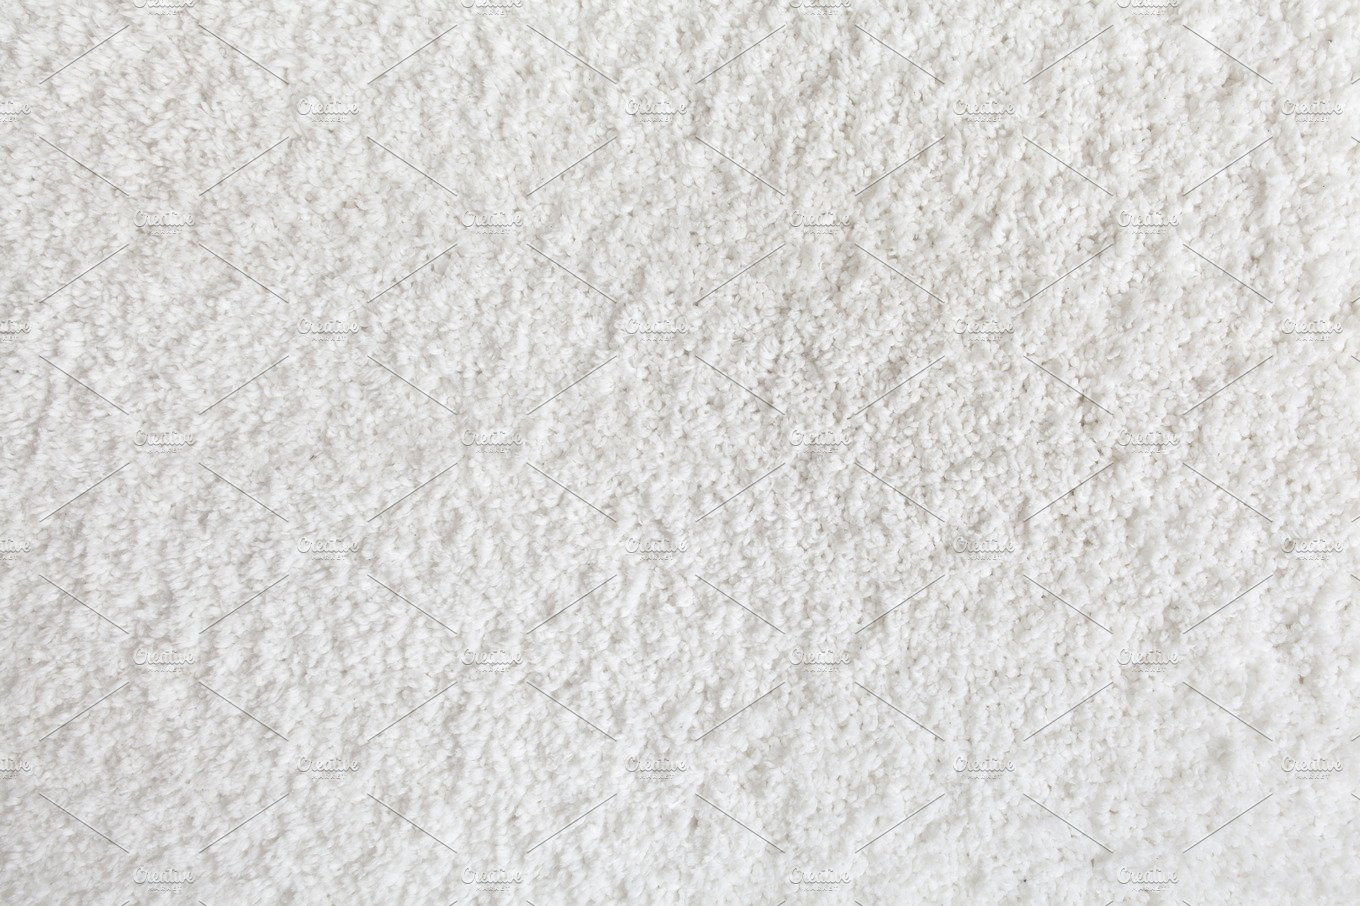 how to get dirt out of white carpet